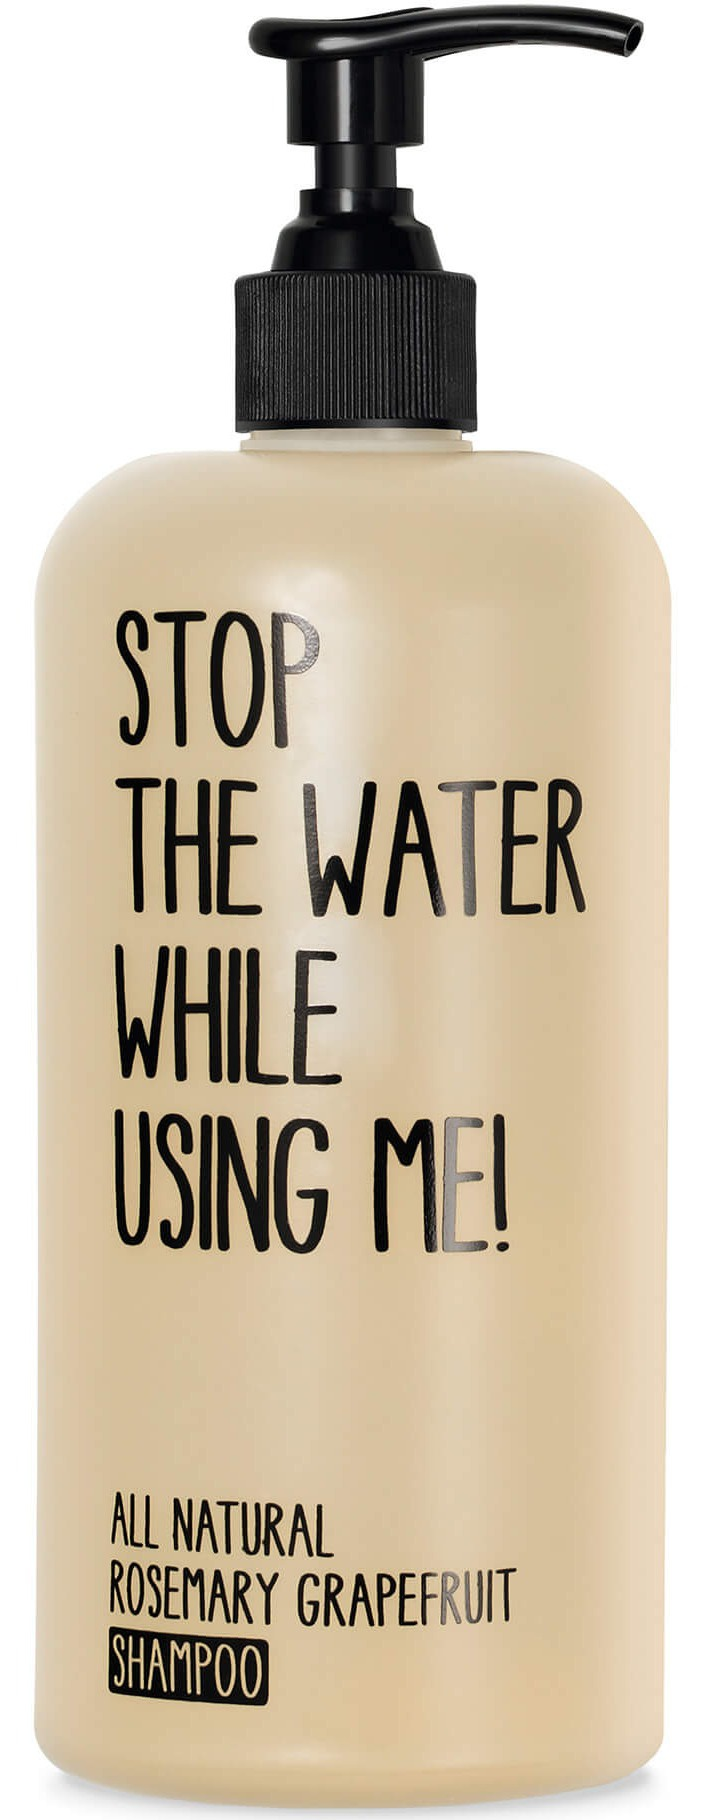 STOP THE WATER WHILE USING ME! Shampoo Rosemary Grapefruit